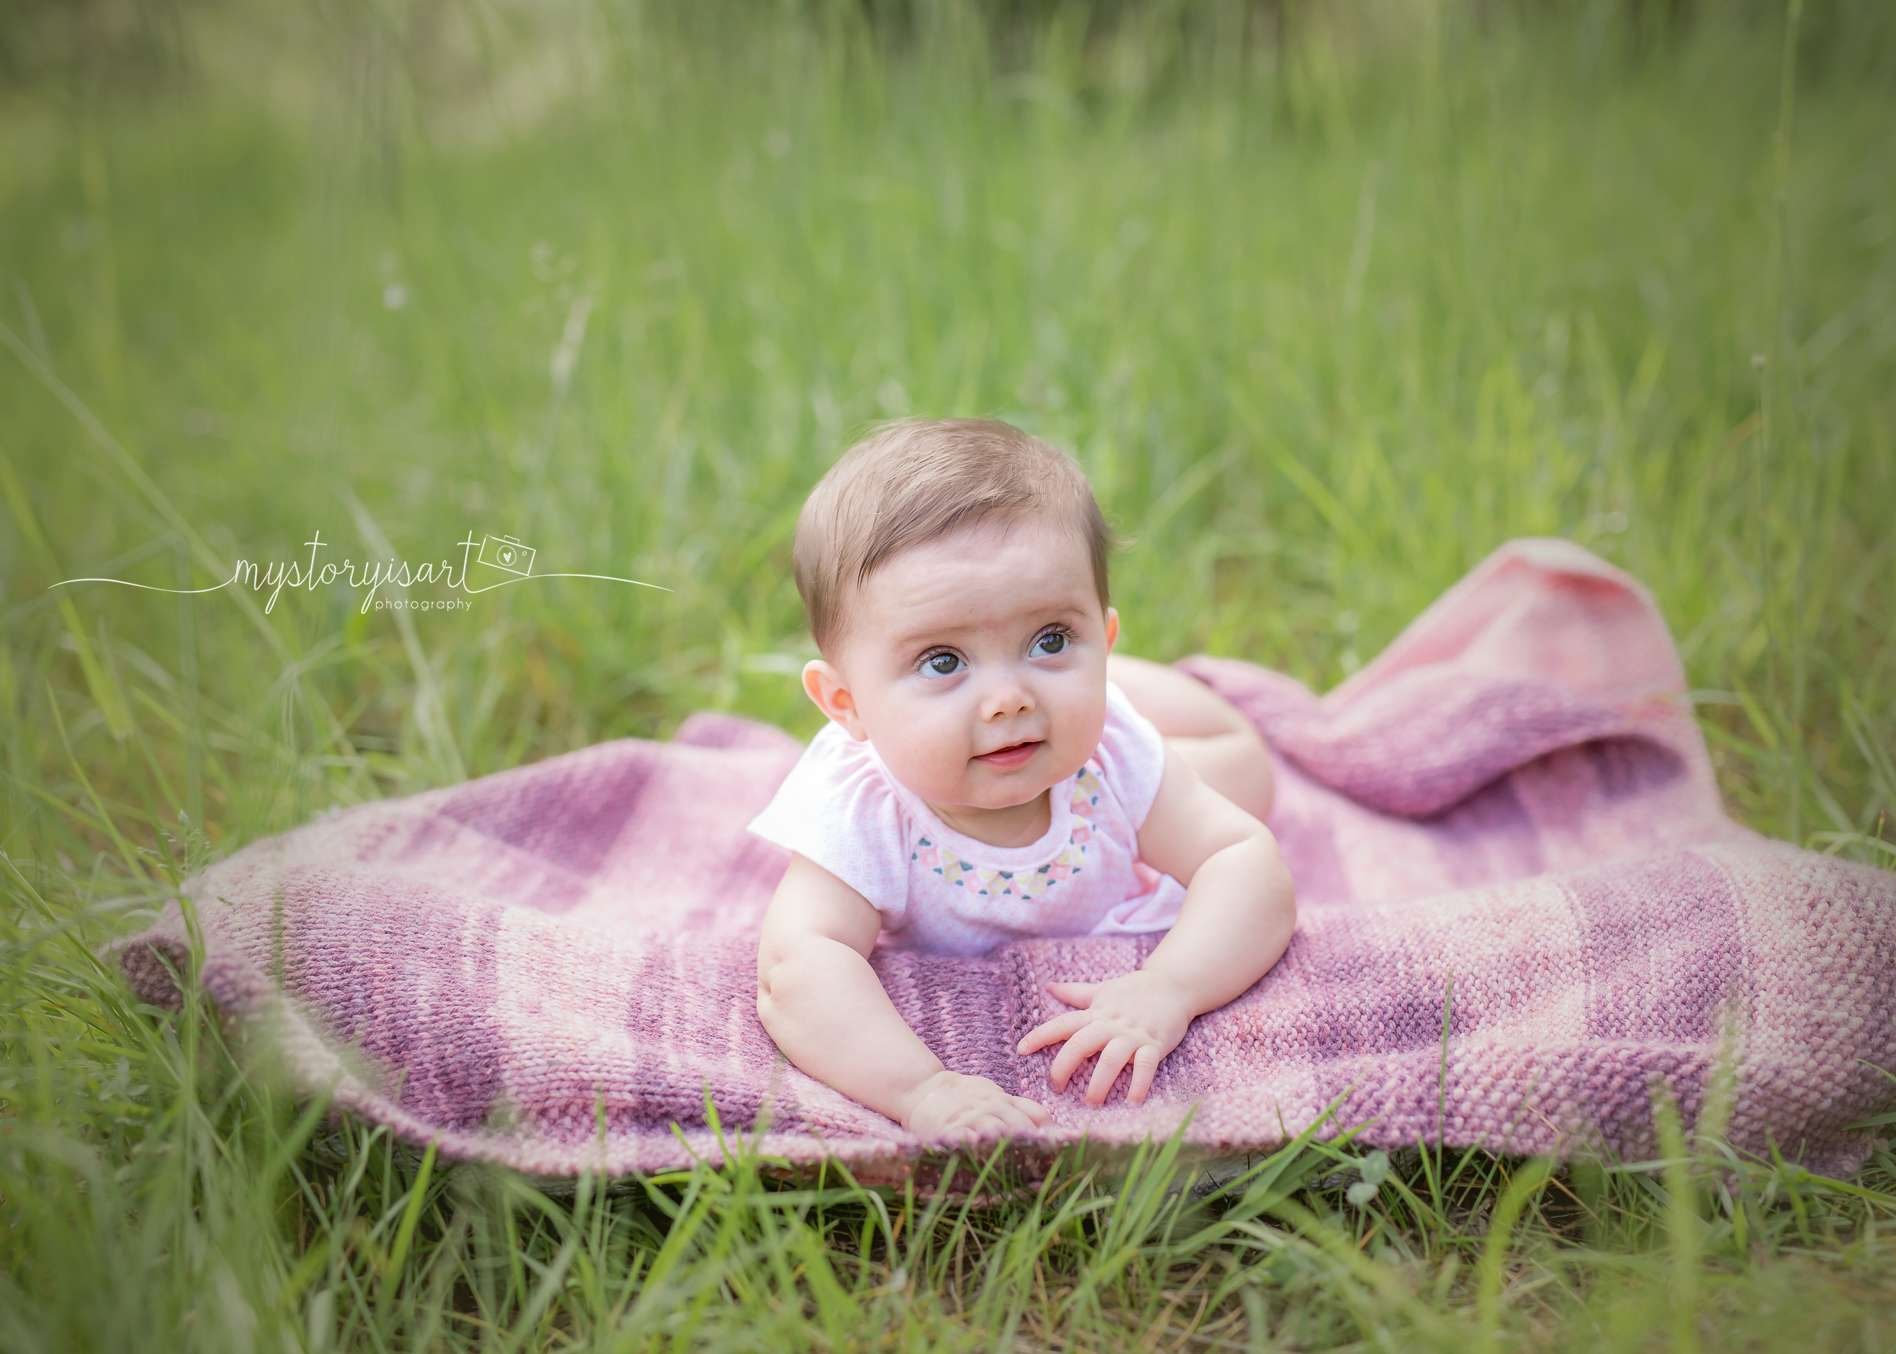 myStoryisArt, newborn, baby, child, family photographer in Utah County